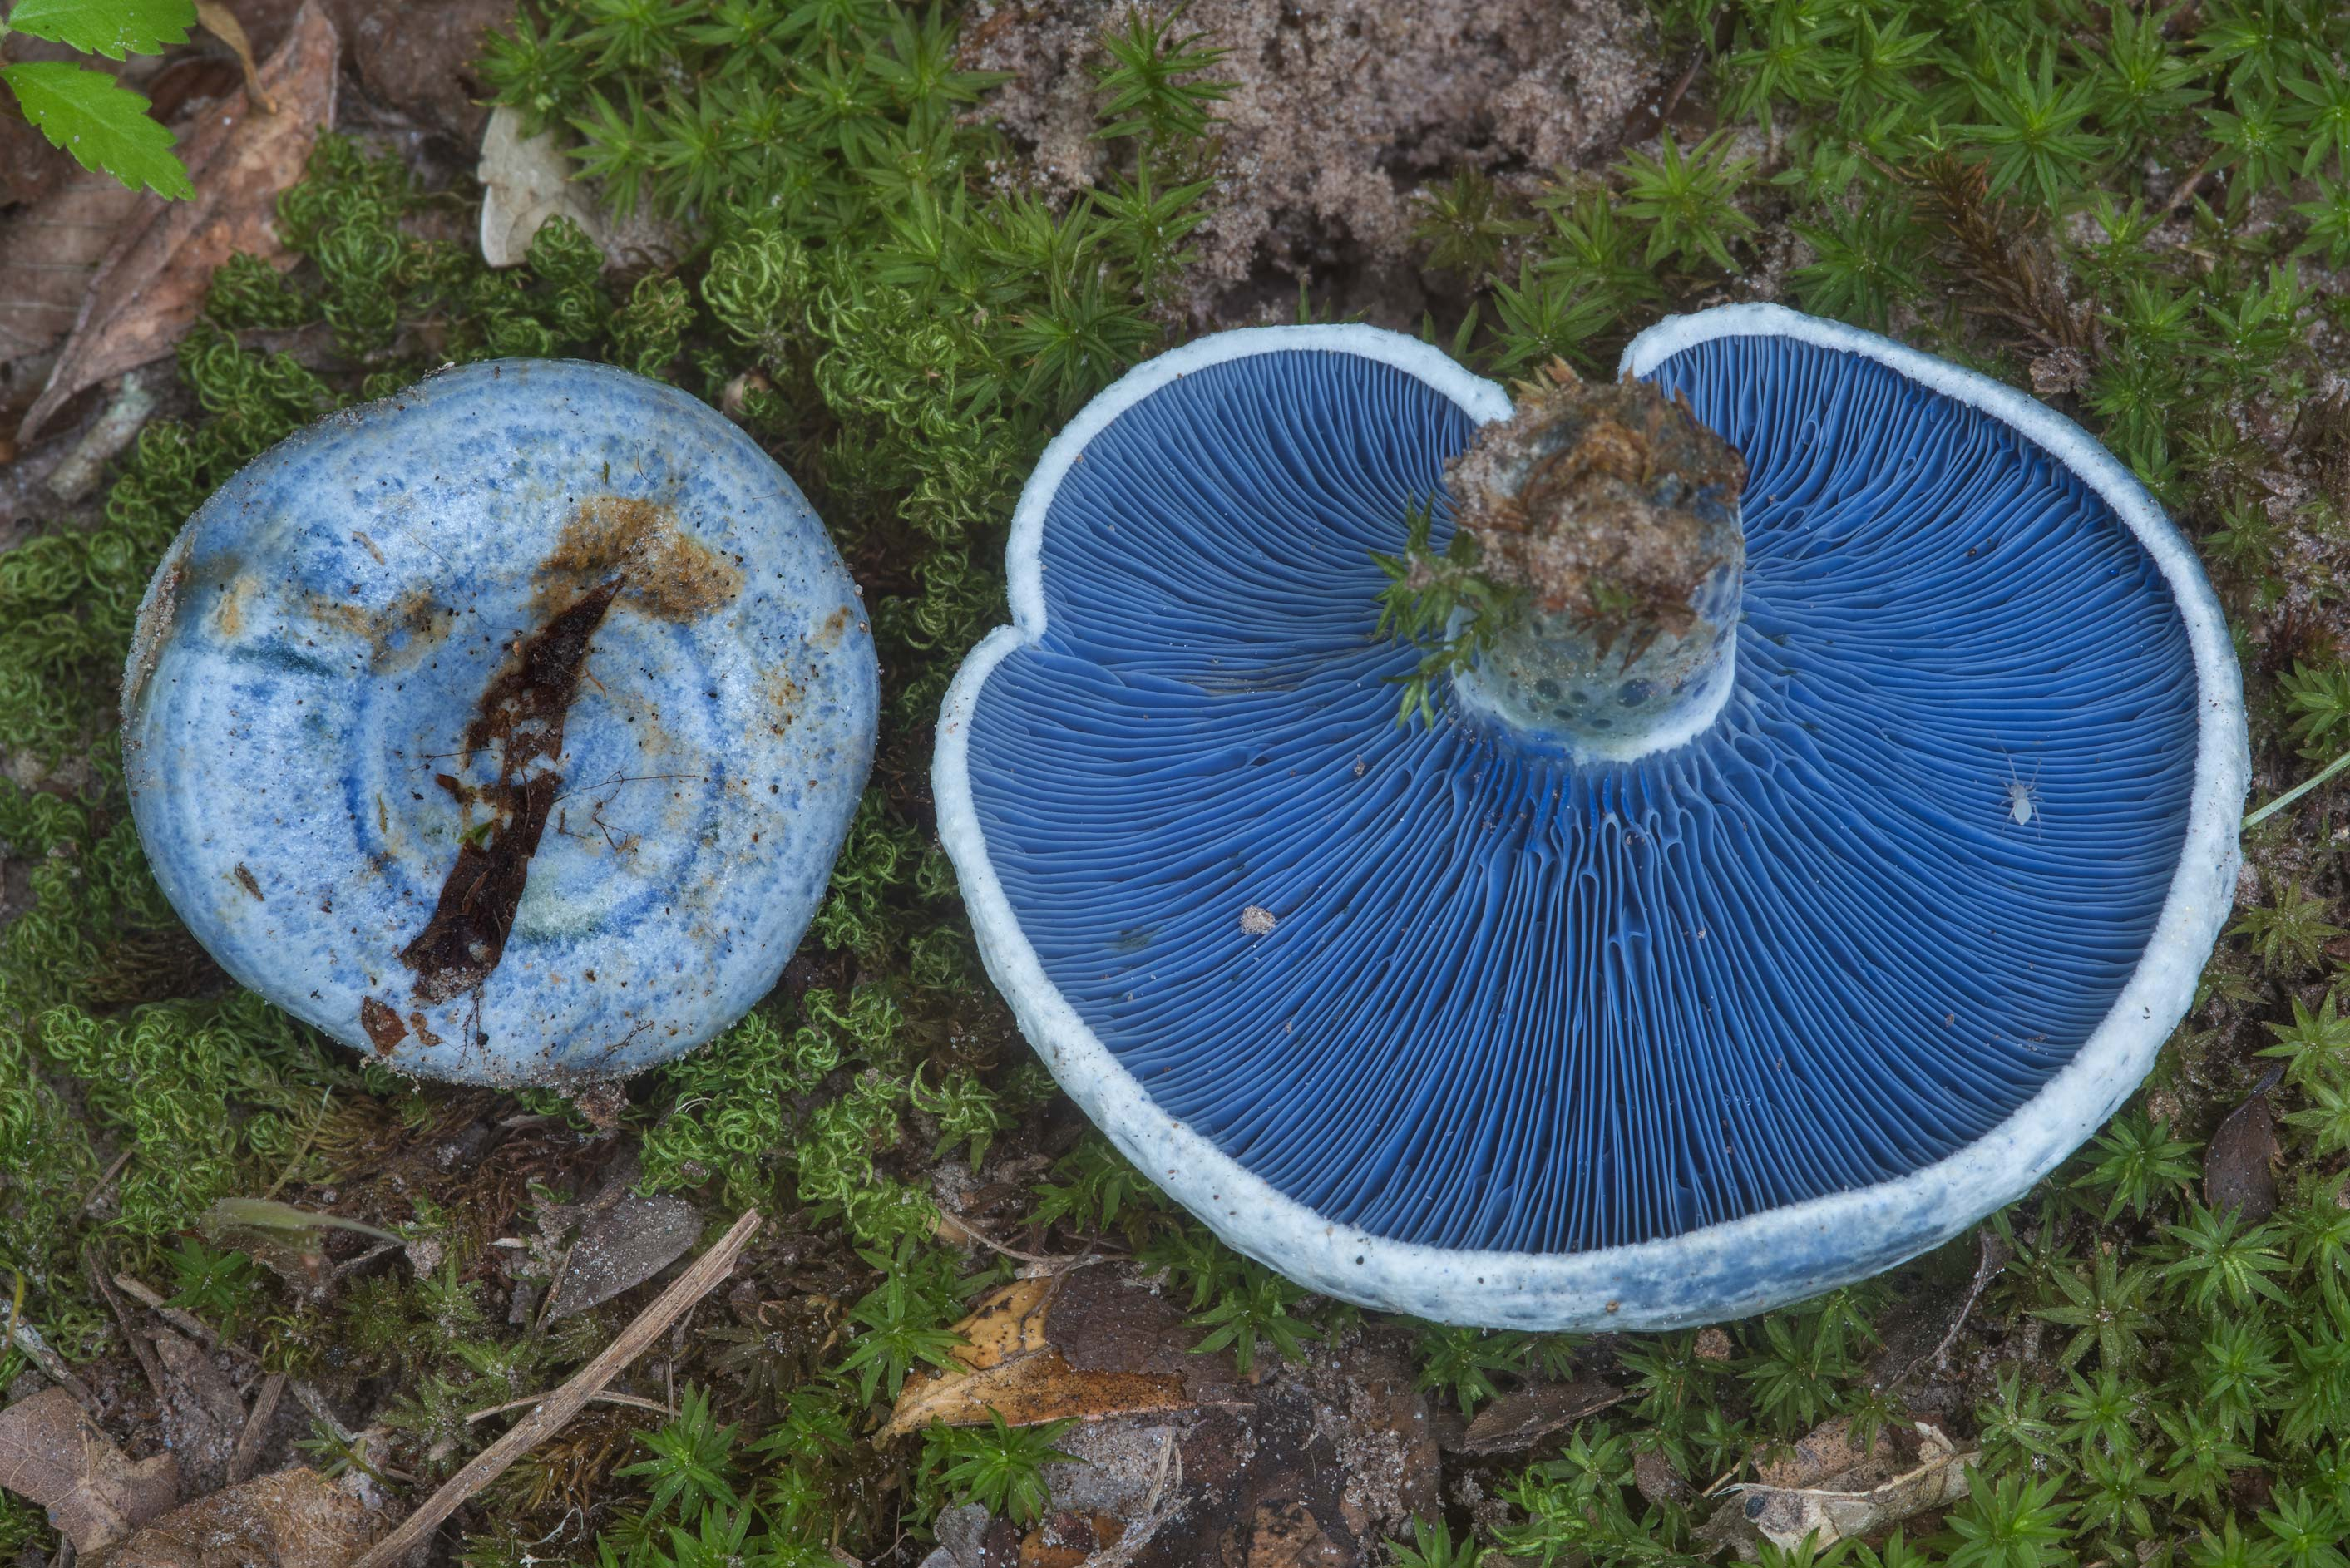 Gills of blue milkcap mushrooms (Lactarius indigo...Creek Park. College Station, Texas